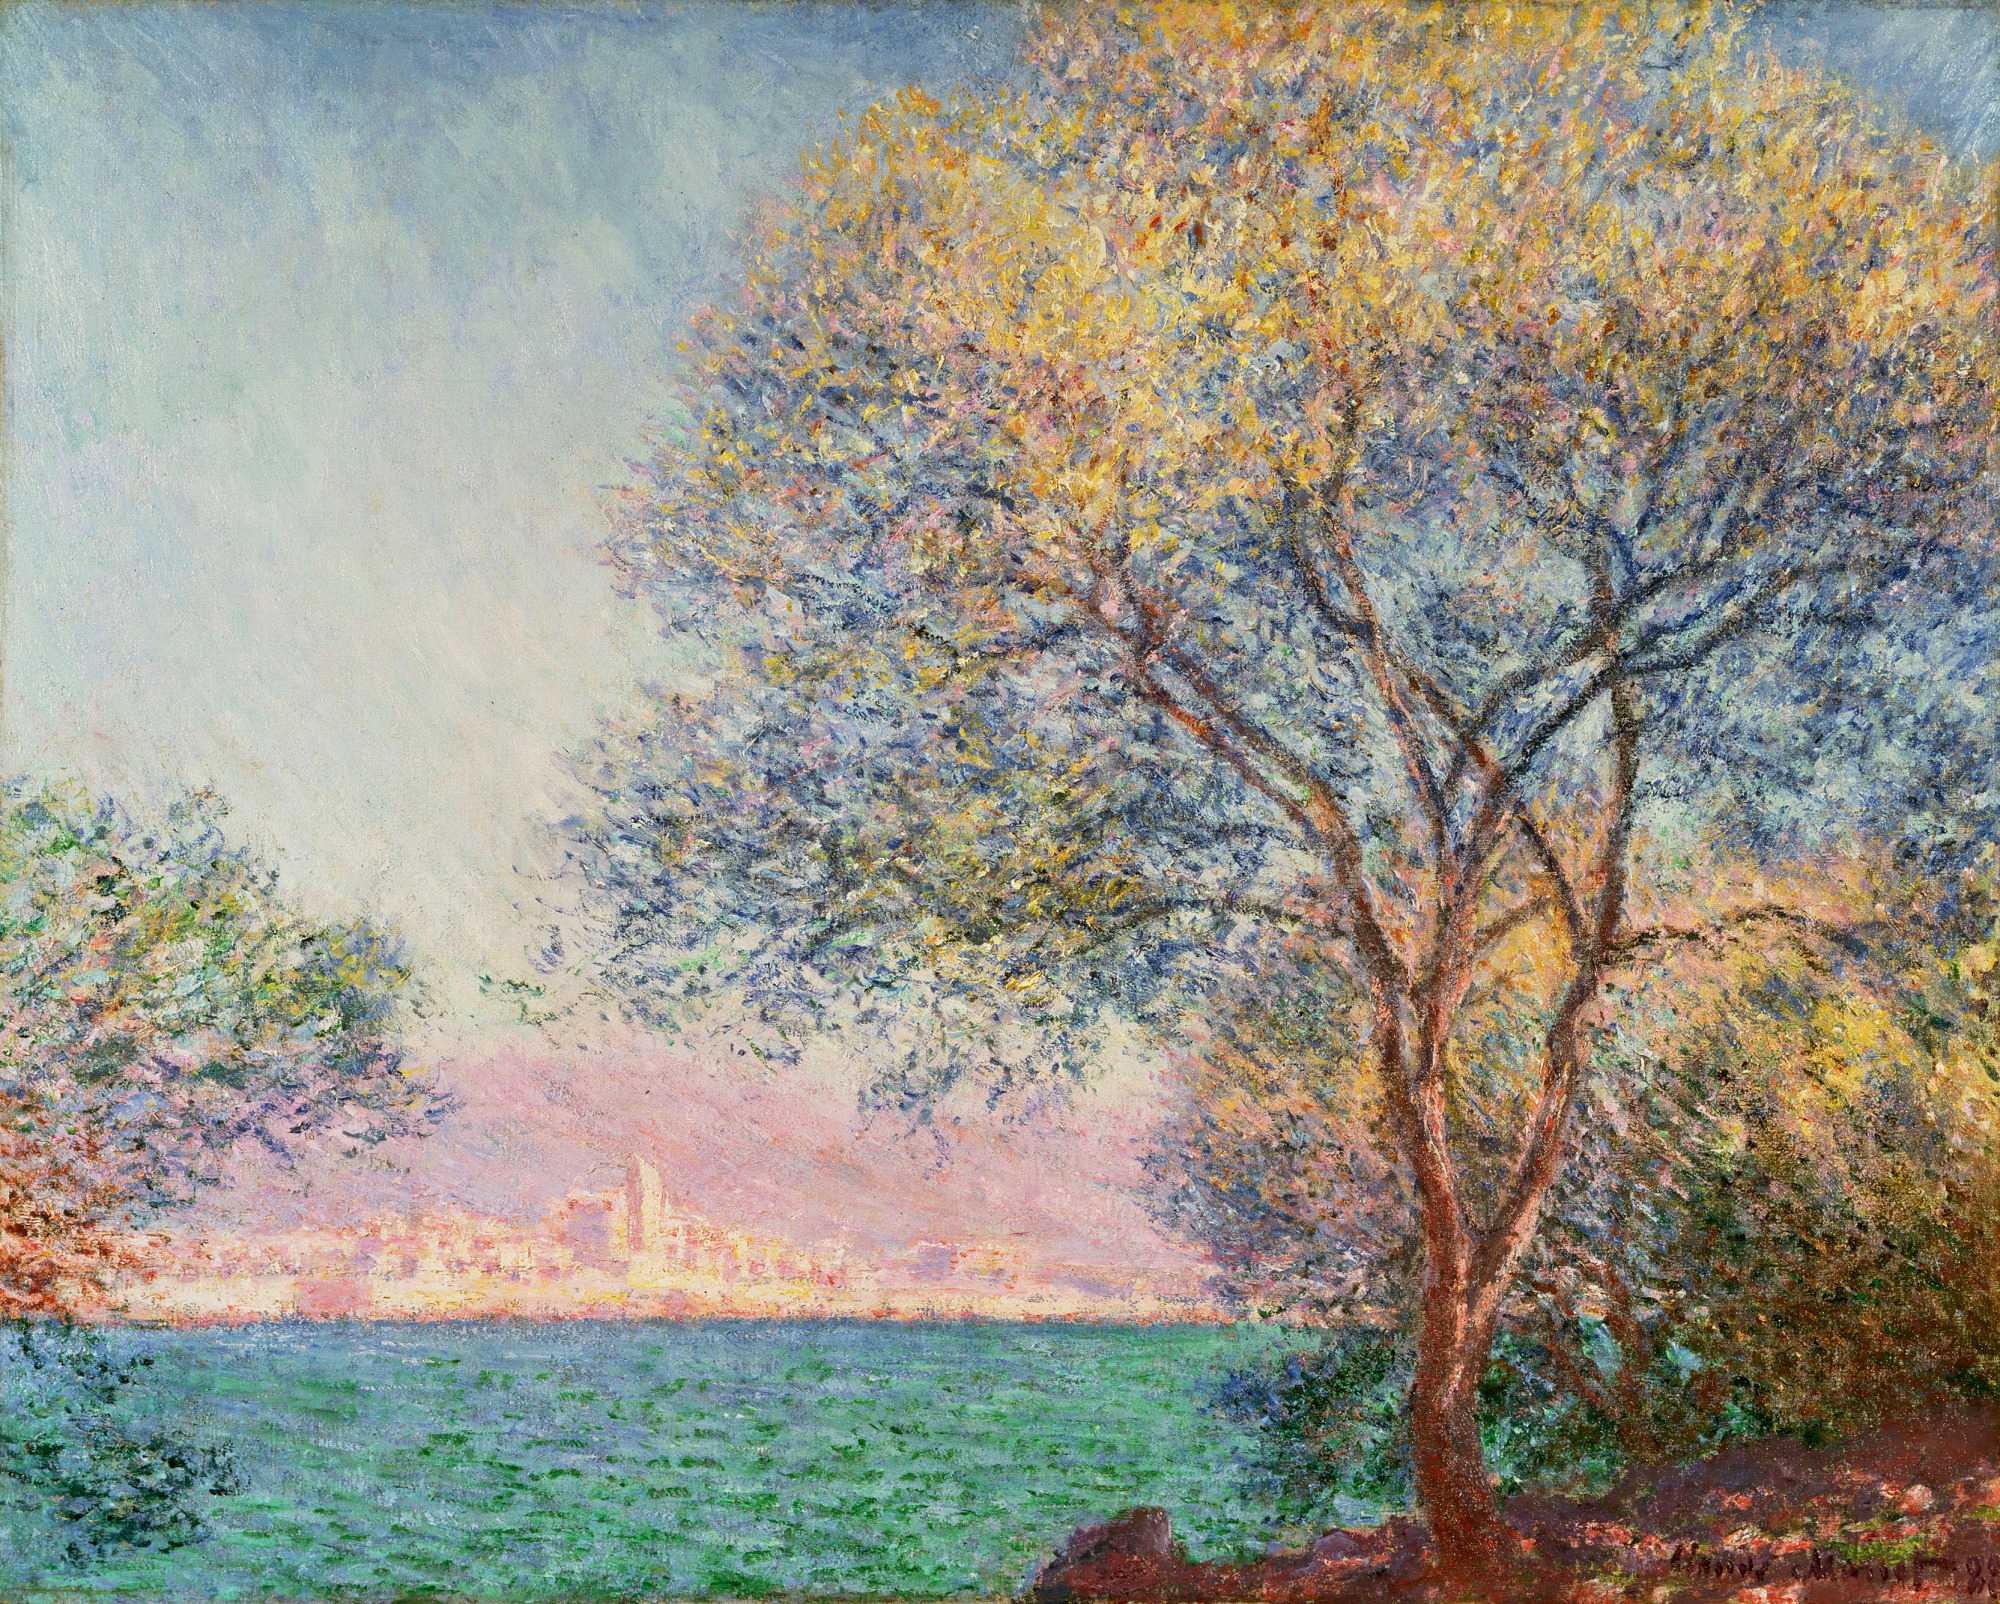 Drawn wallpapers   Paintings Painting Monet   Antibes in the morning 2000x1604